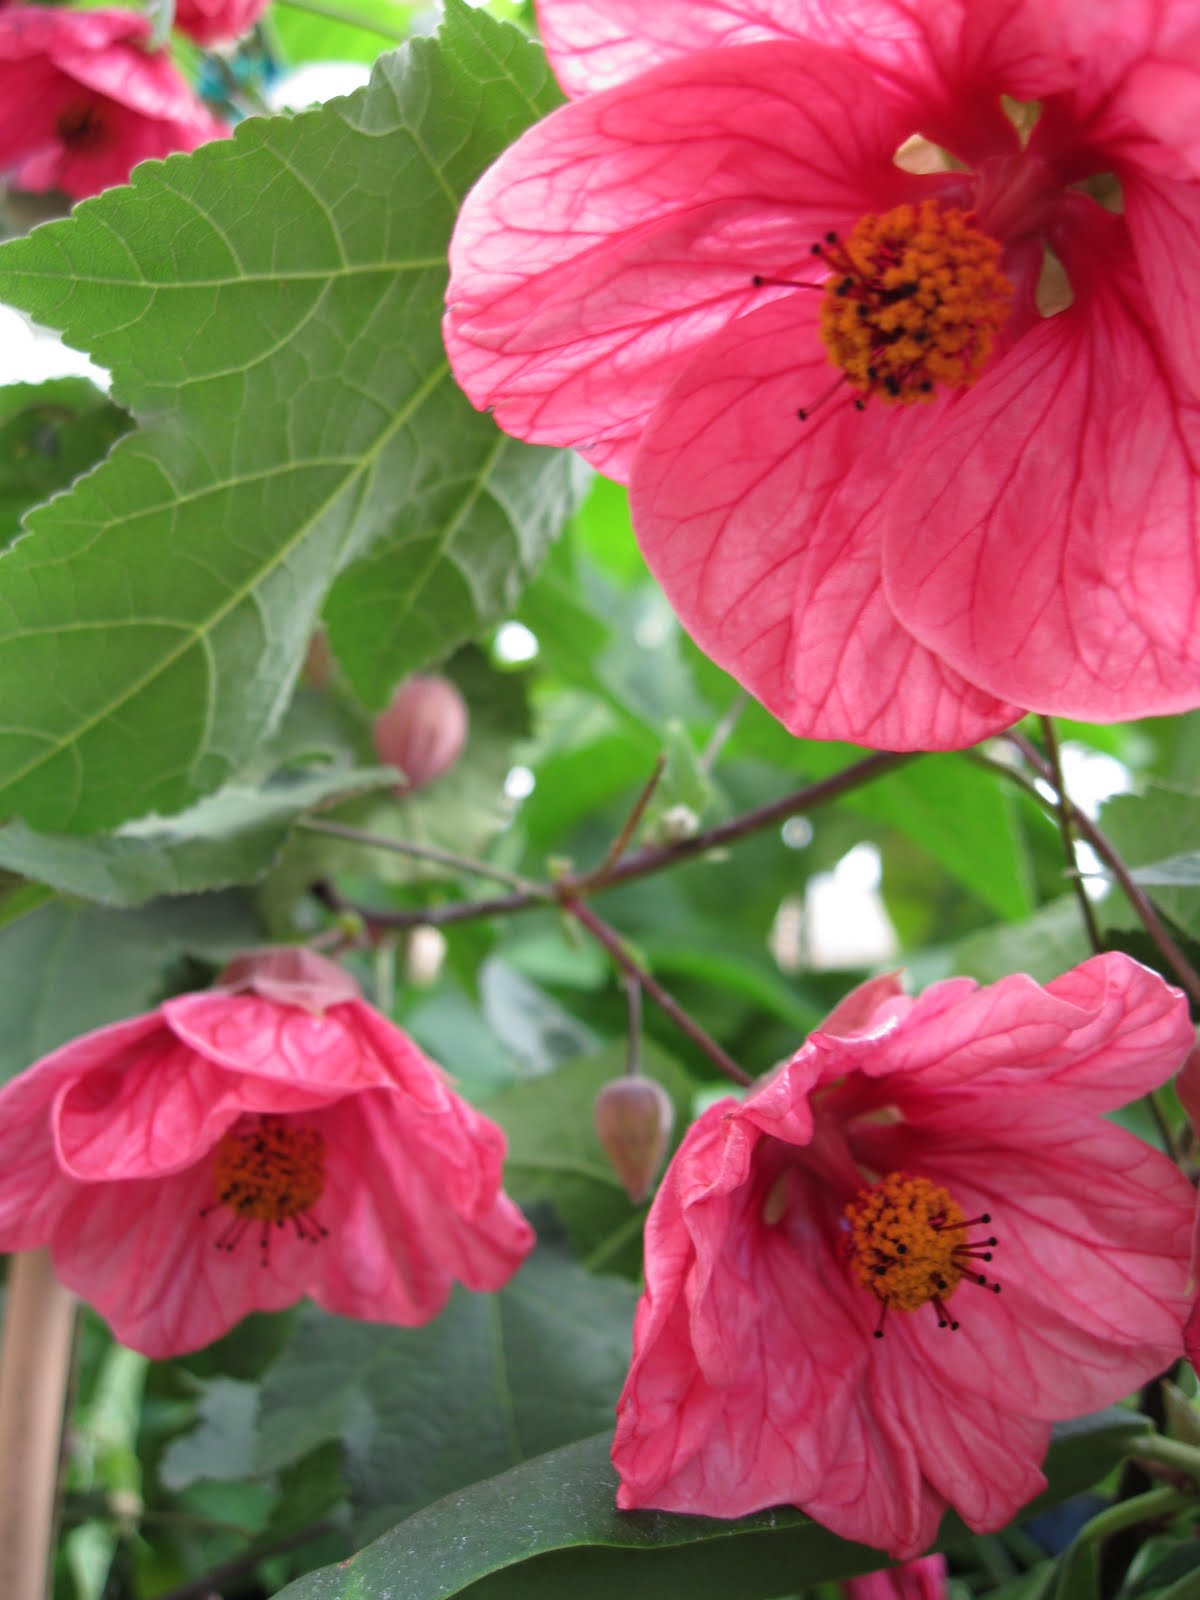 Abutilon our plant pick of the month sloat garden center abutilon also known as chinese lantern or flowering maple is a favorite in our climate they will flower continuously from late spring through fall mightylinksfo